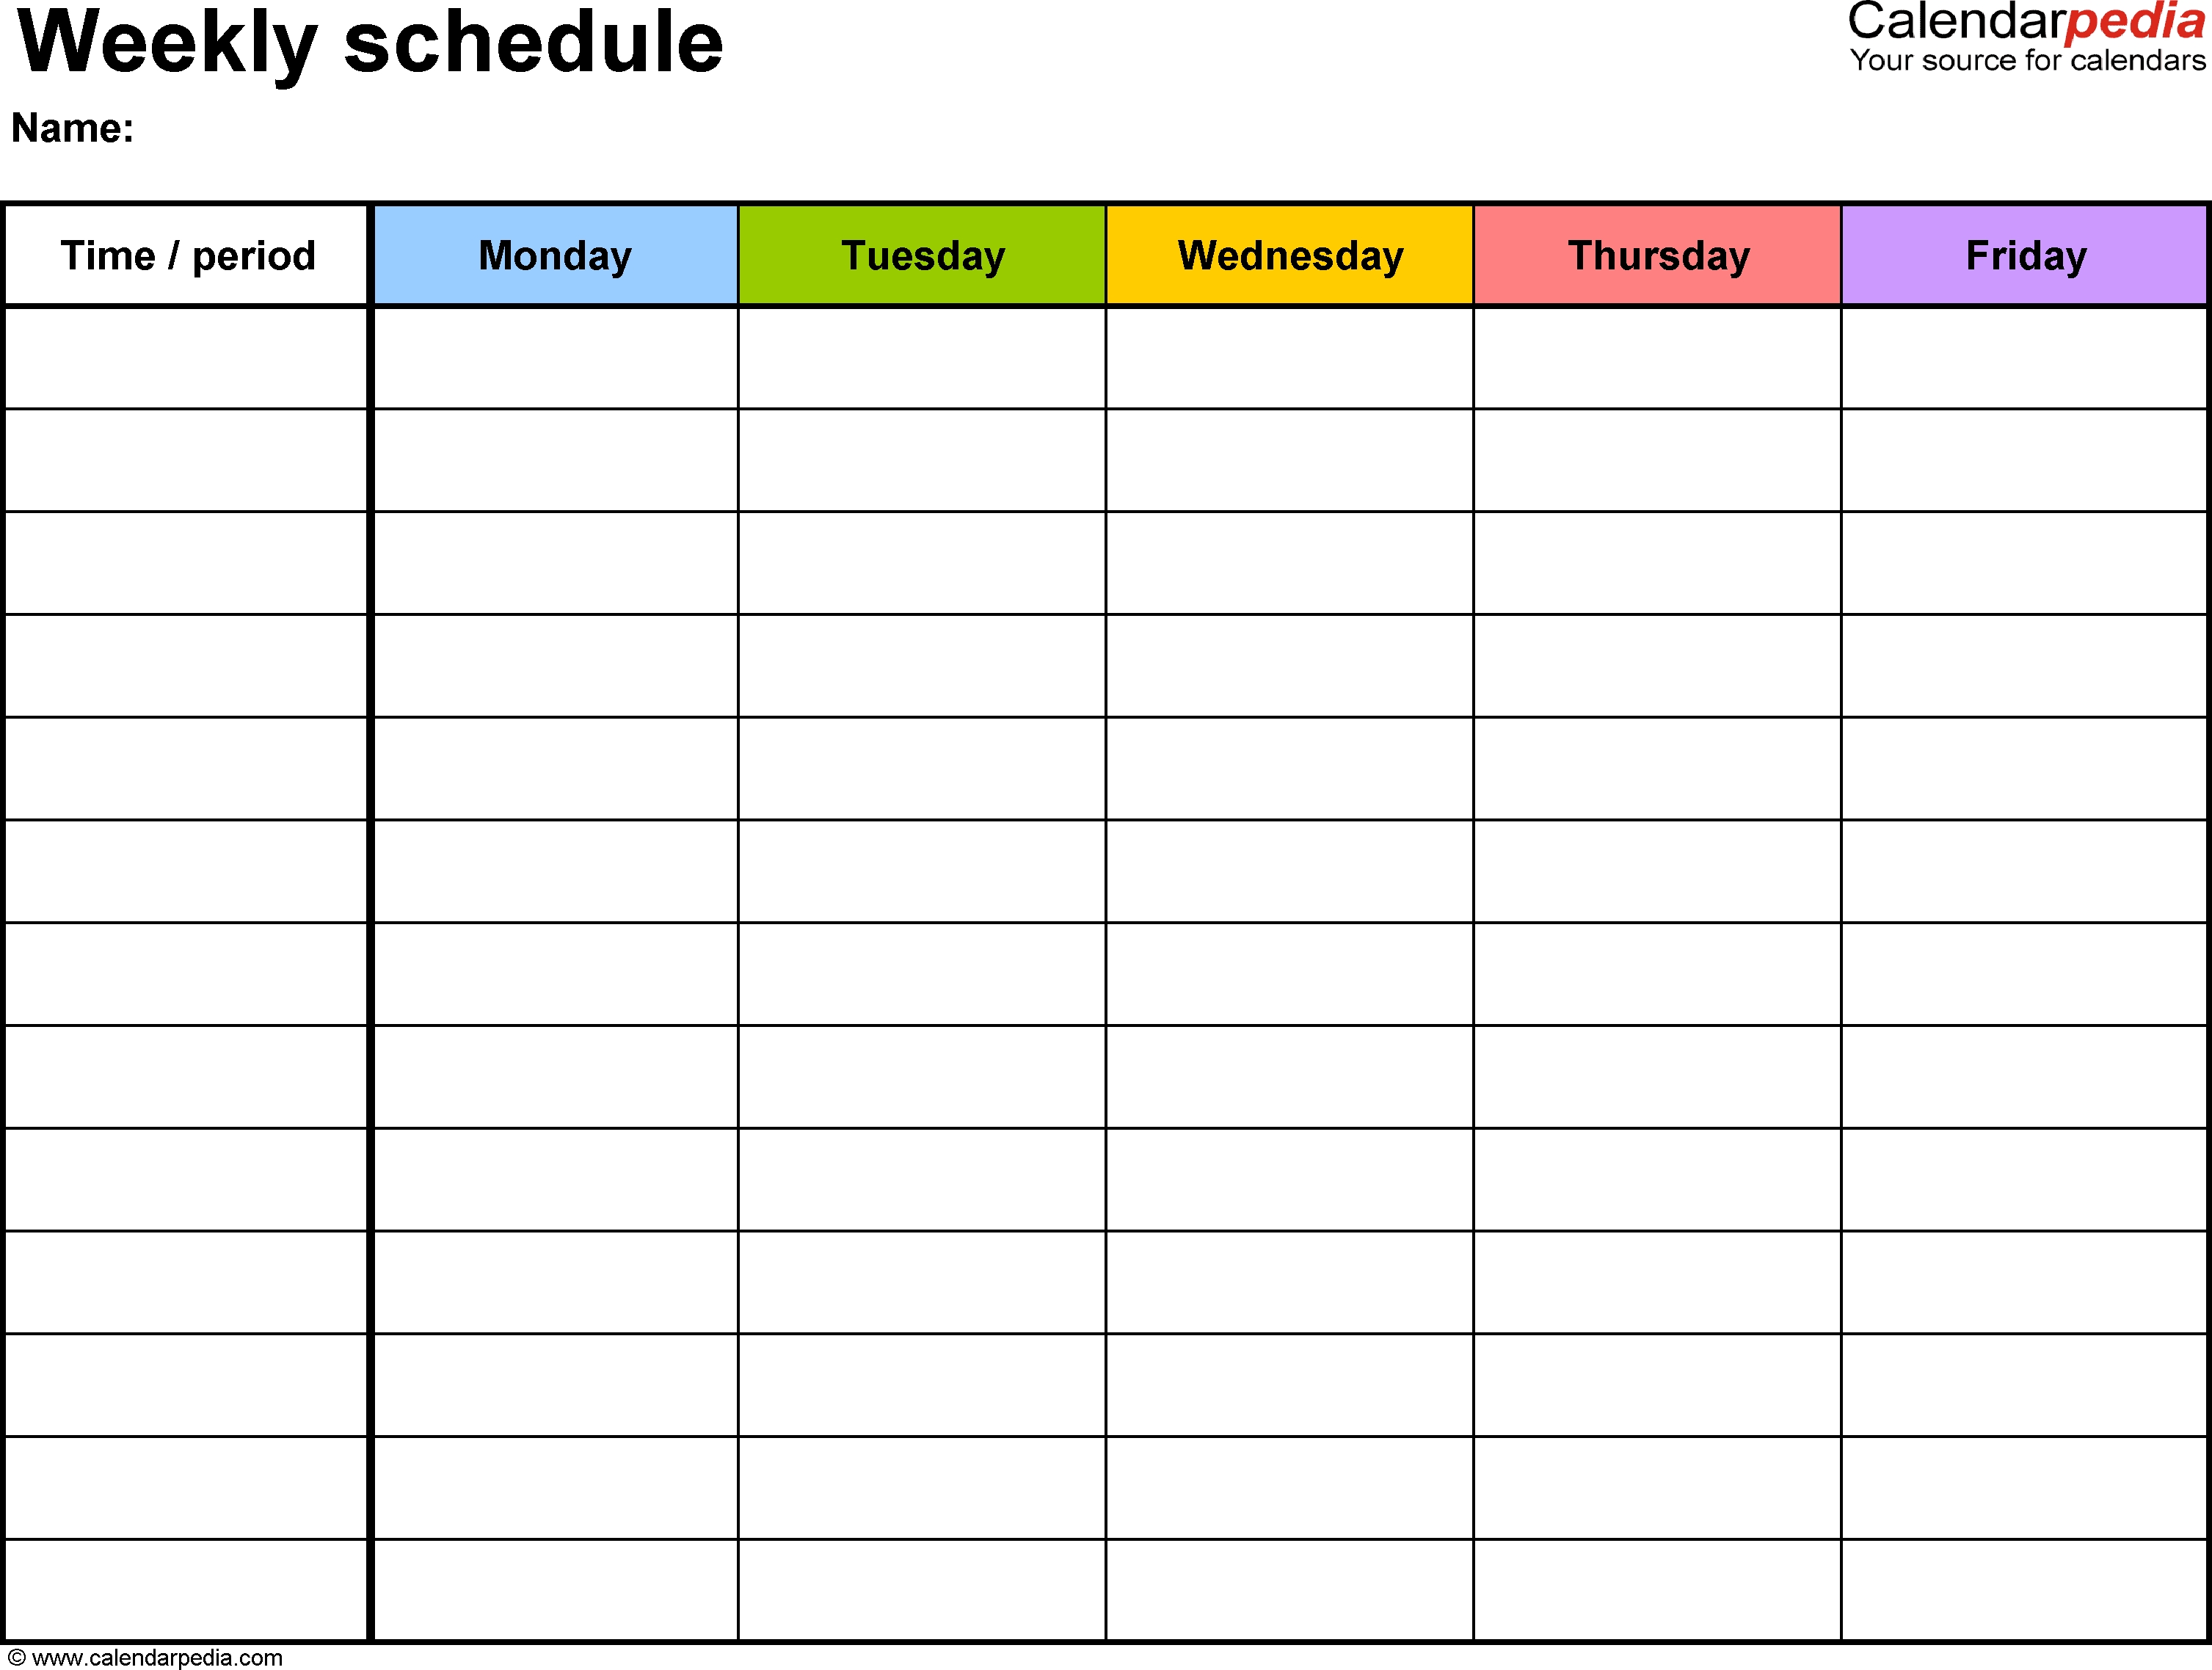 Free Weekly Schedule Templates For Word - 18 Templates Calendar Template To Fill In